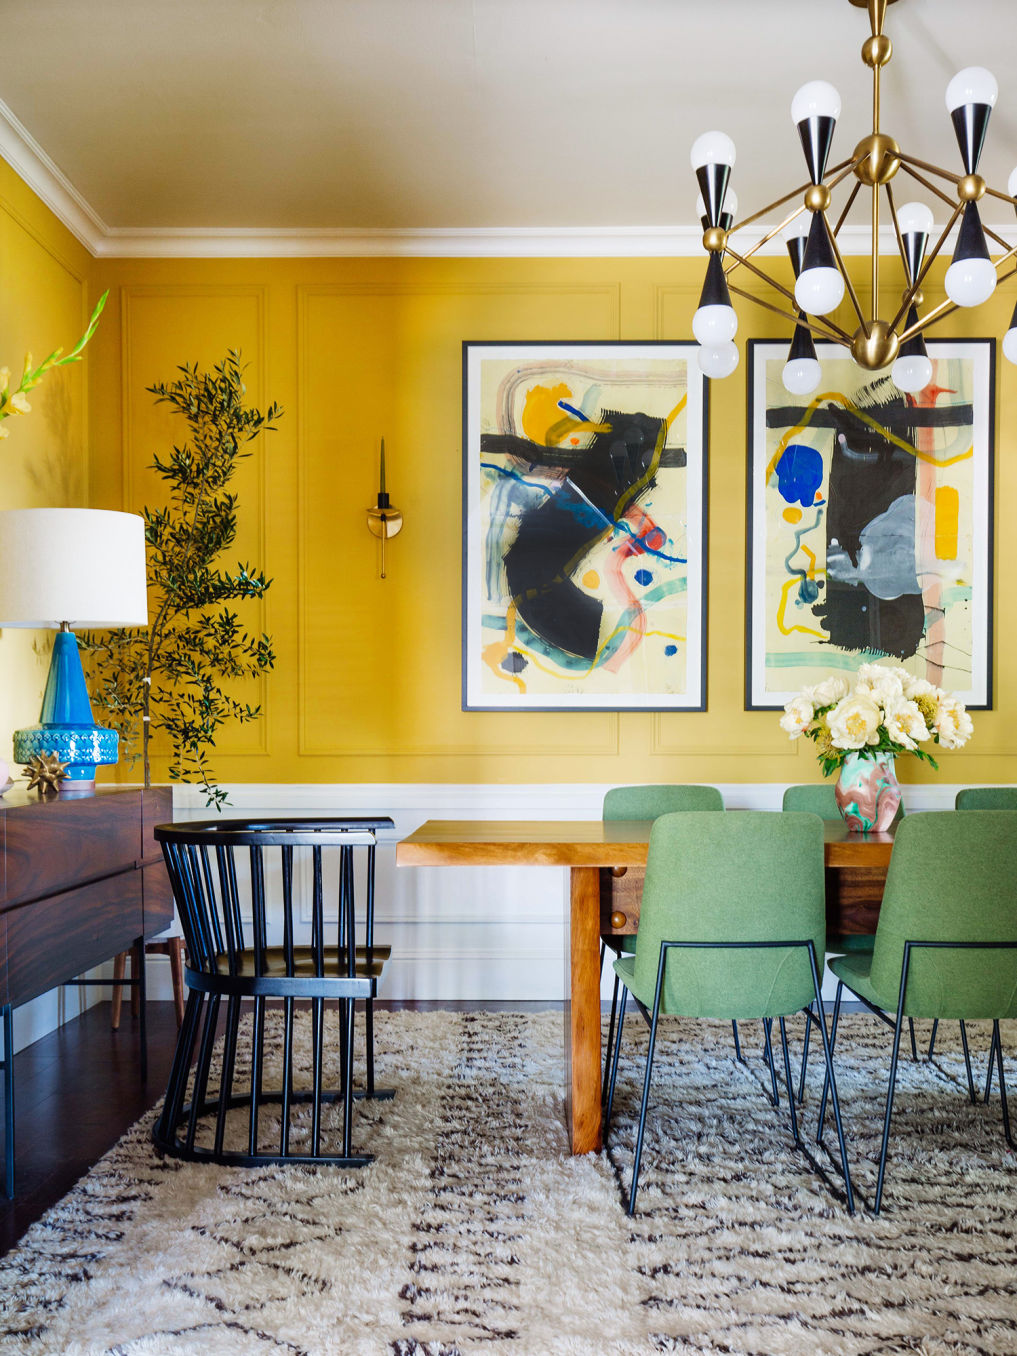 Color lovers! Love the yellow walls in this vintage modern dining room #diningroomdecor #diningroom #bohodecor #vintagemodern #lighting #chandelier